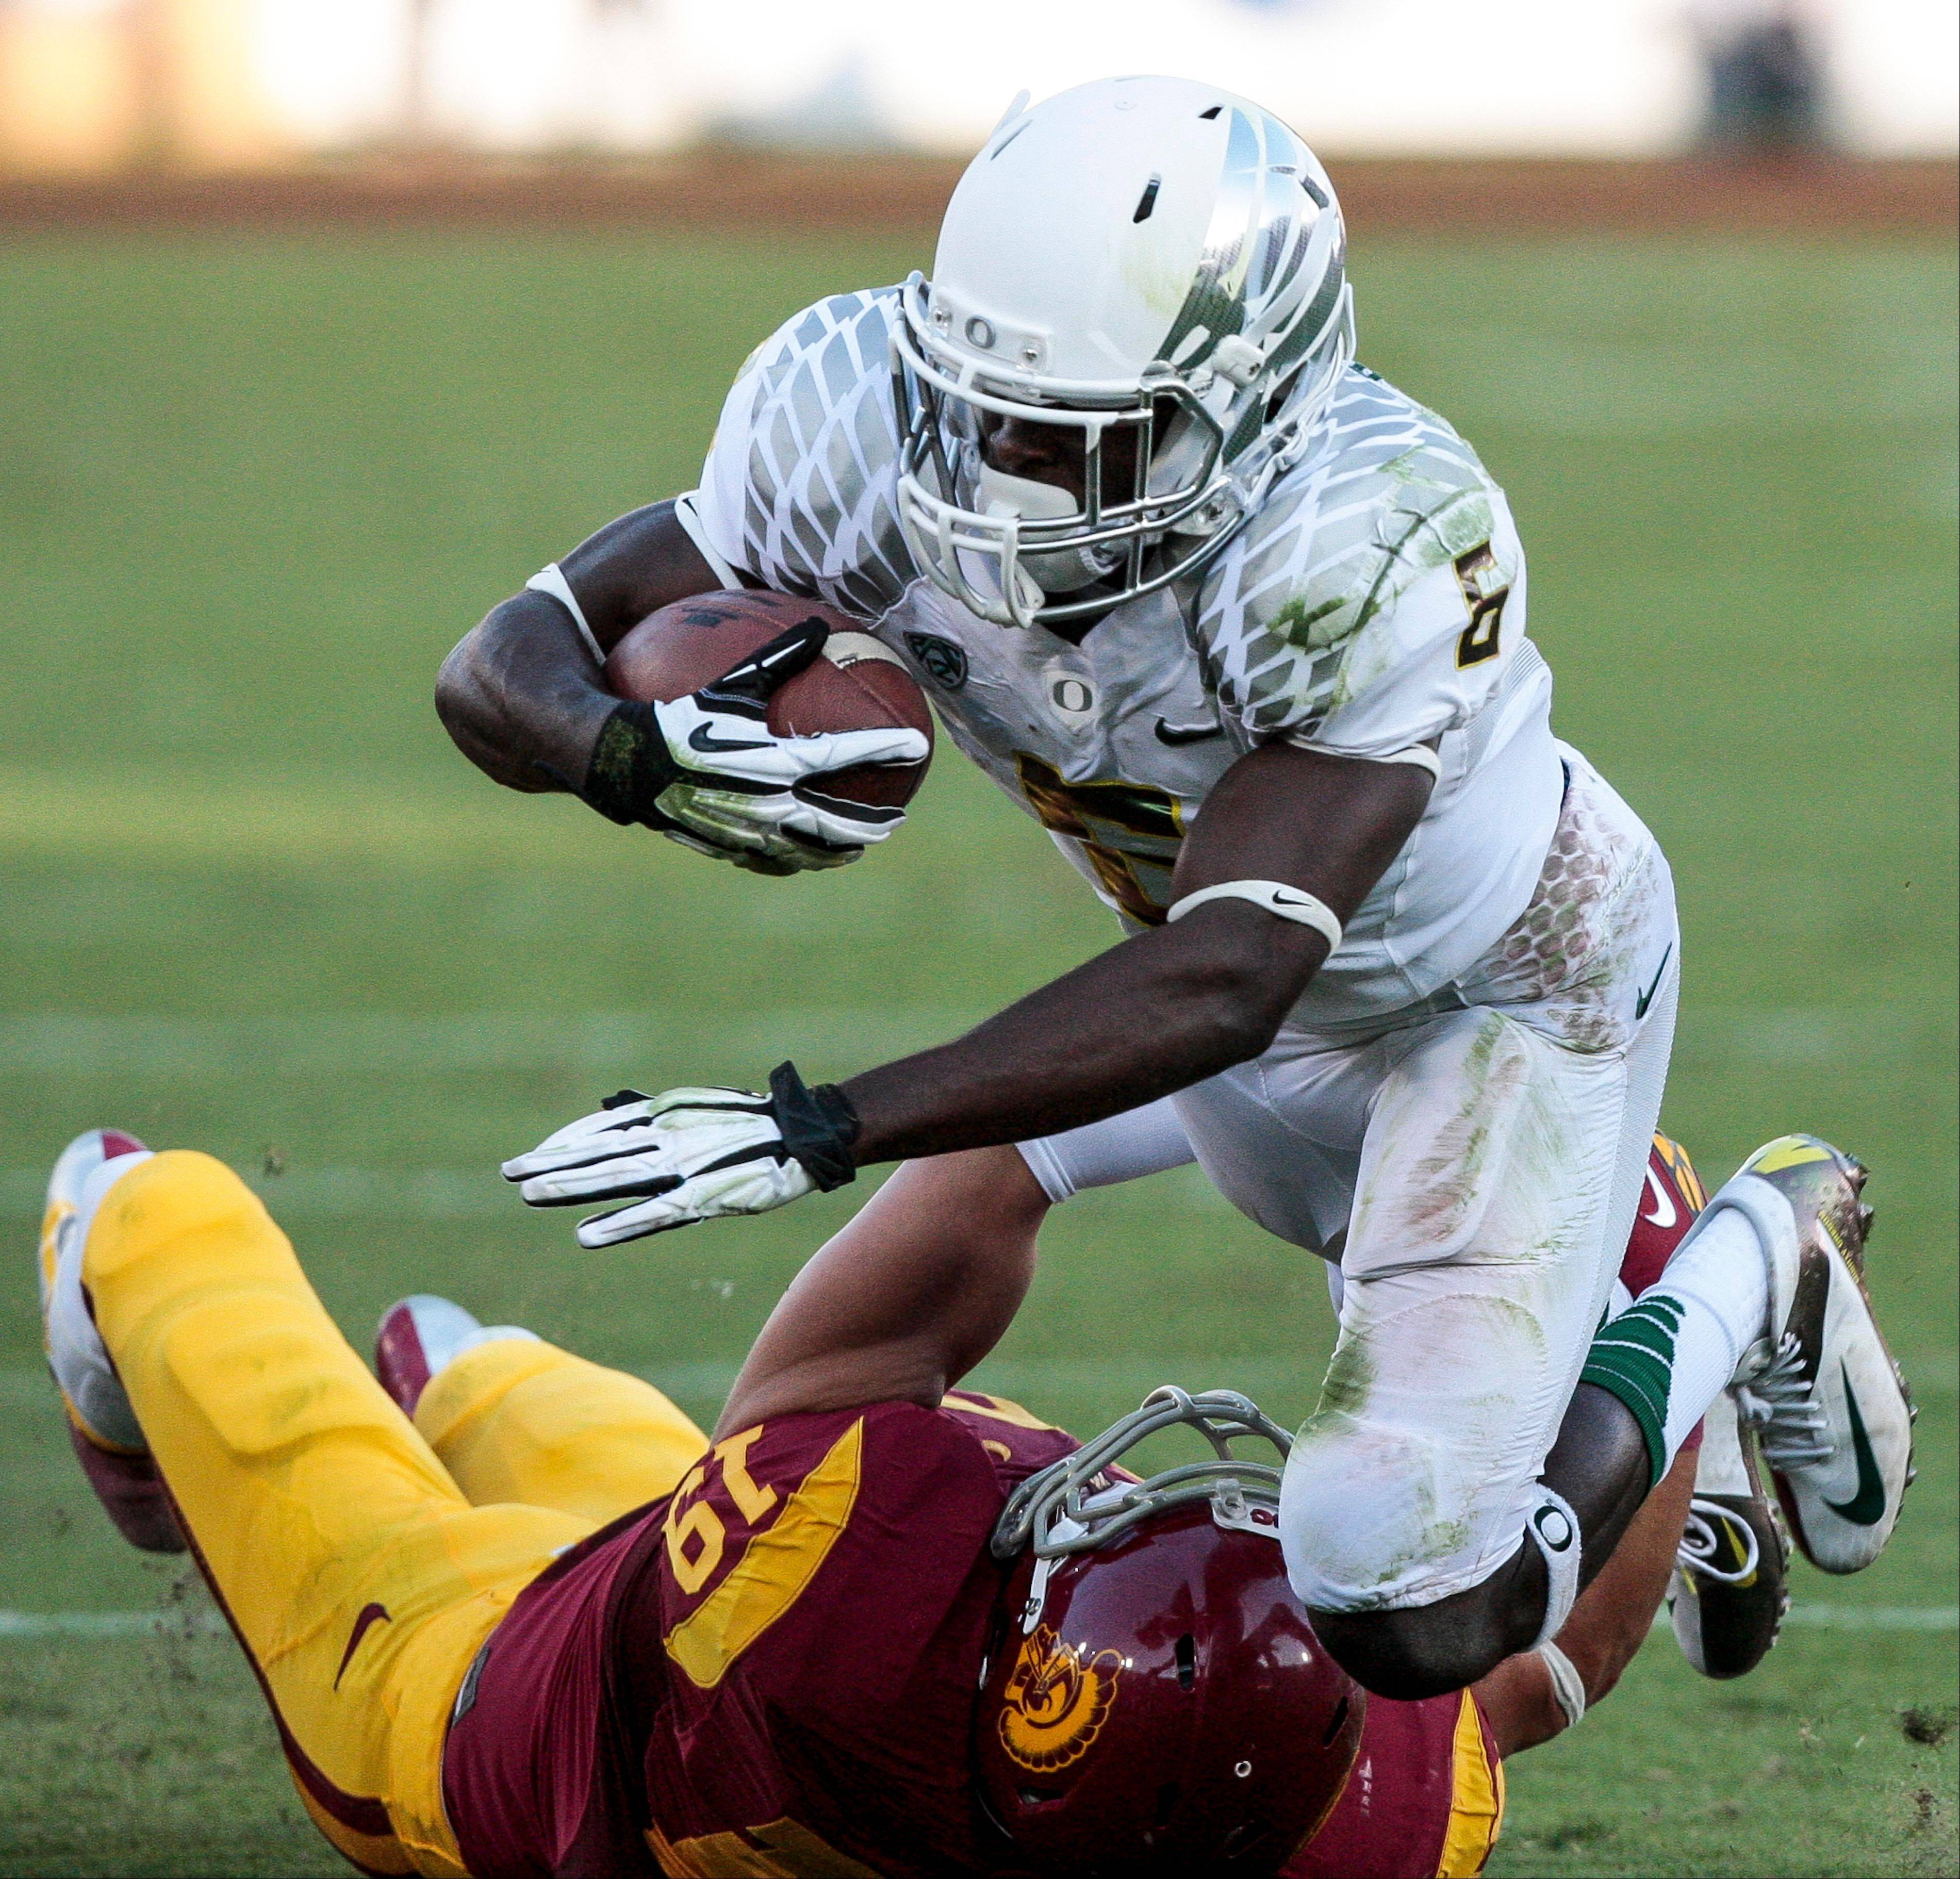 Oregon running back De'Anthony Thomas is tackled by Southern California safety Drew McAllister Saturday during the first half in Los Angeles. Oregon won 62-51.